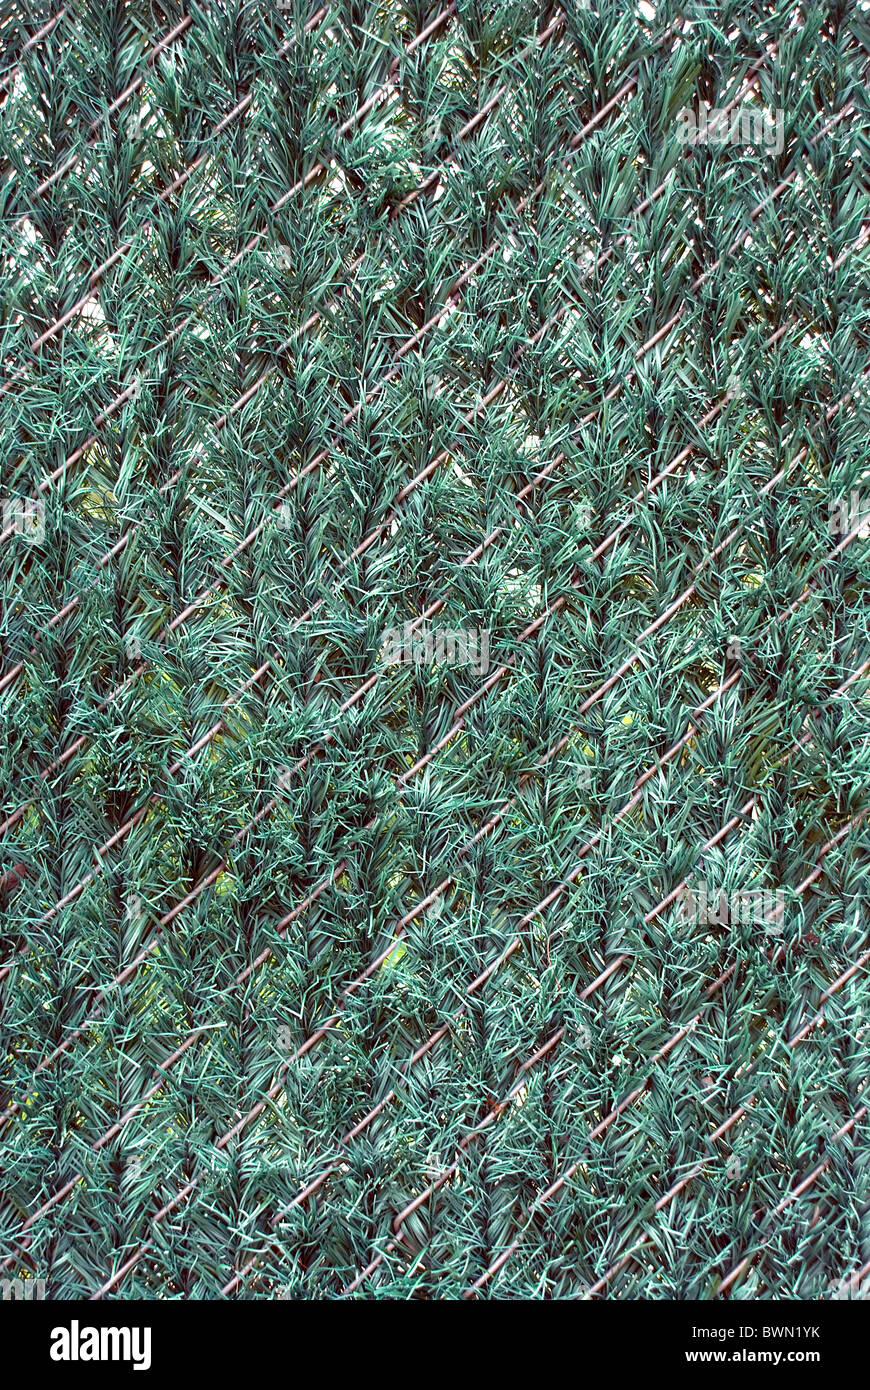 Image Result For Pre Made Chain Link Fence Panels